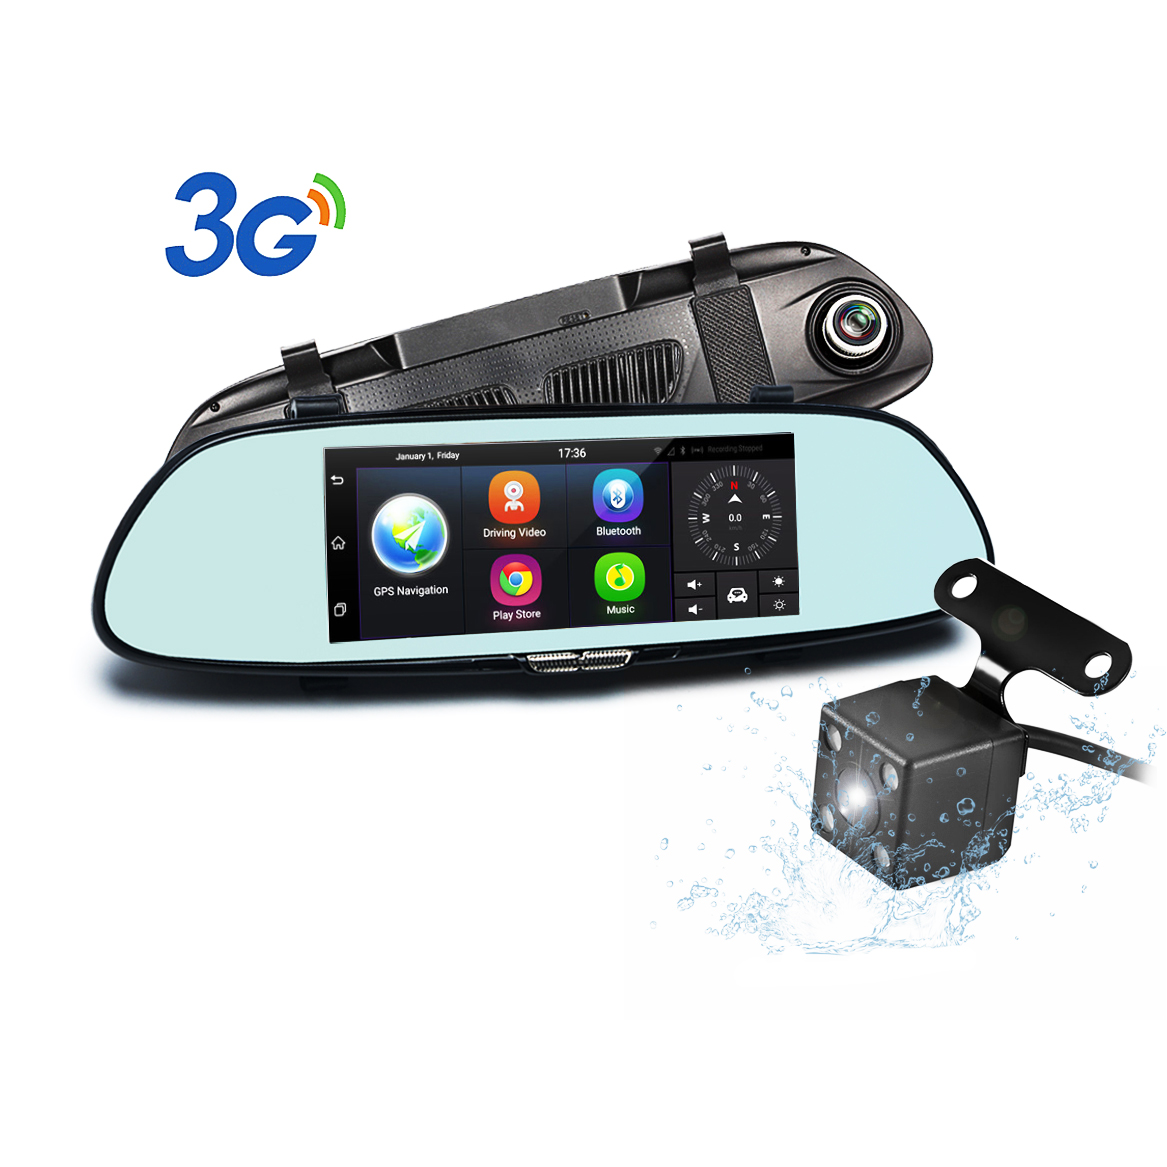 "Dual Lens Car Camera Podofo 7"" Android 5.0 GPS Navigation 3G Dash Cam Rear View Mirror Backup Camera Vehicle Video Recorder, WiFi, Bluetooth, Touch Screen"